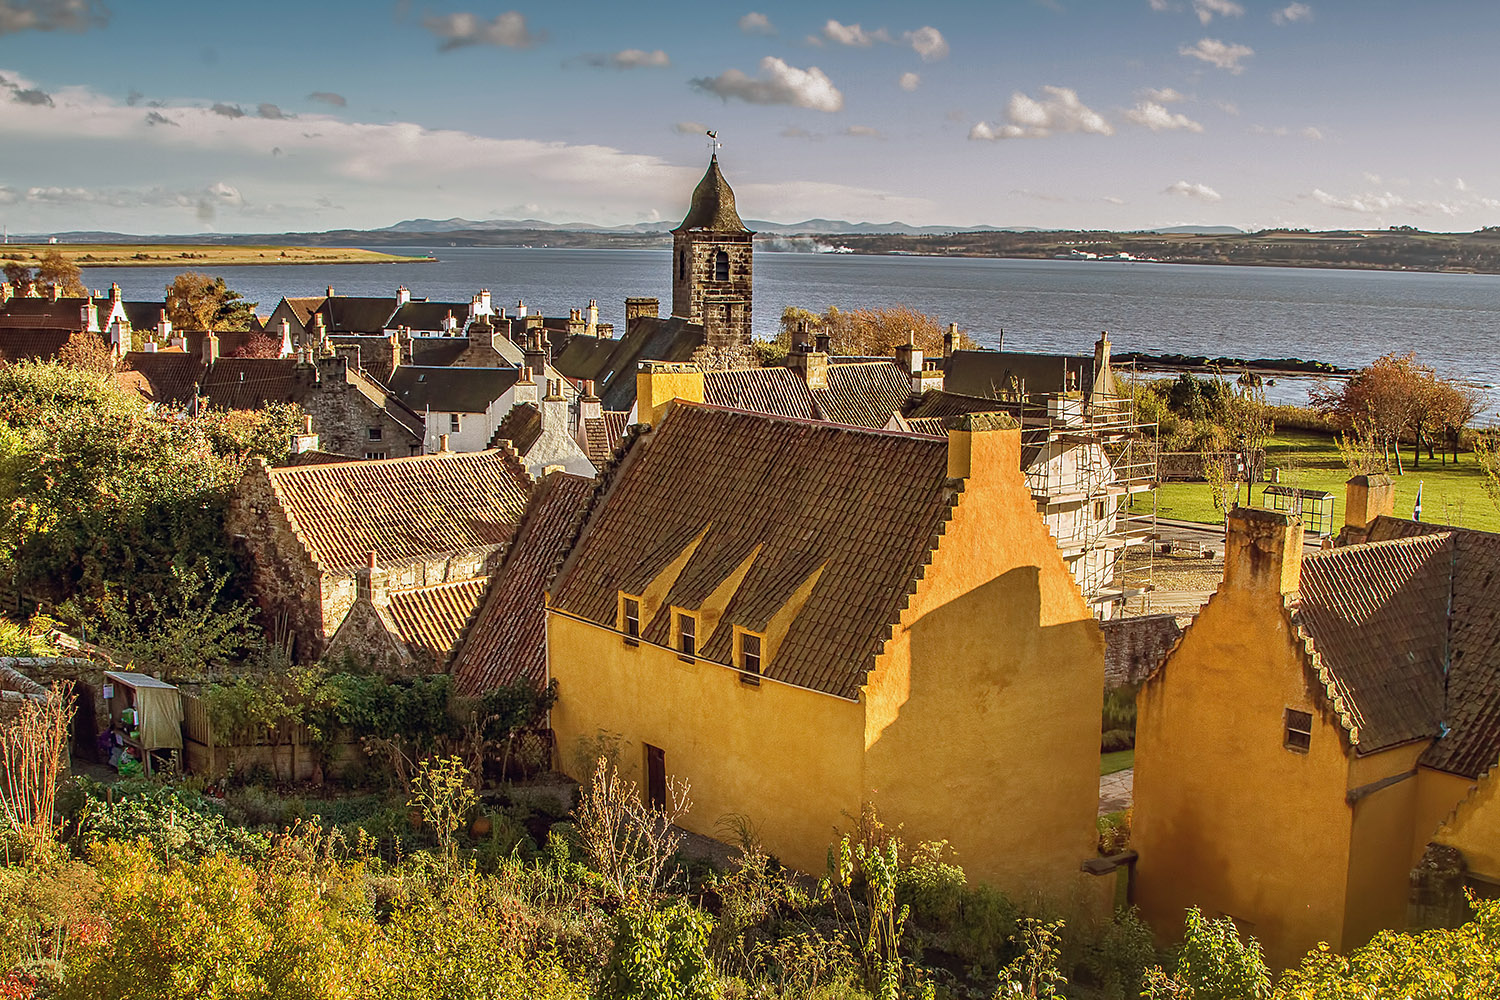 The lovely village of Culross, this 16th century village is visited in our Outlander tour